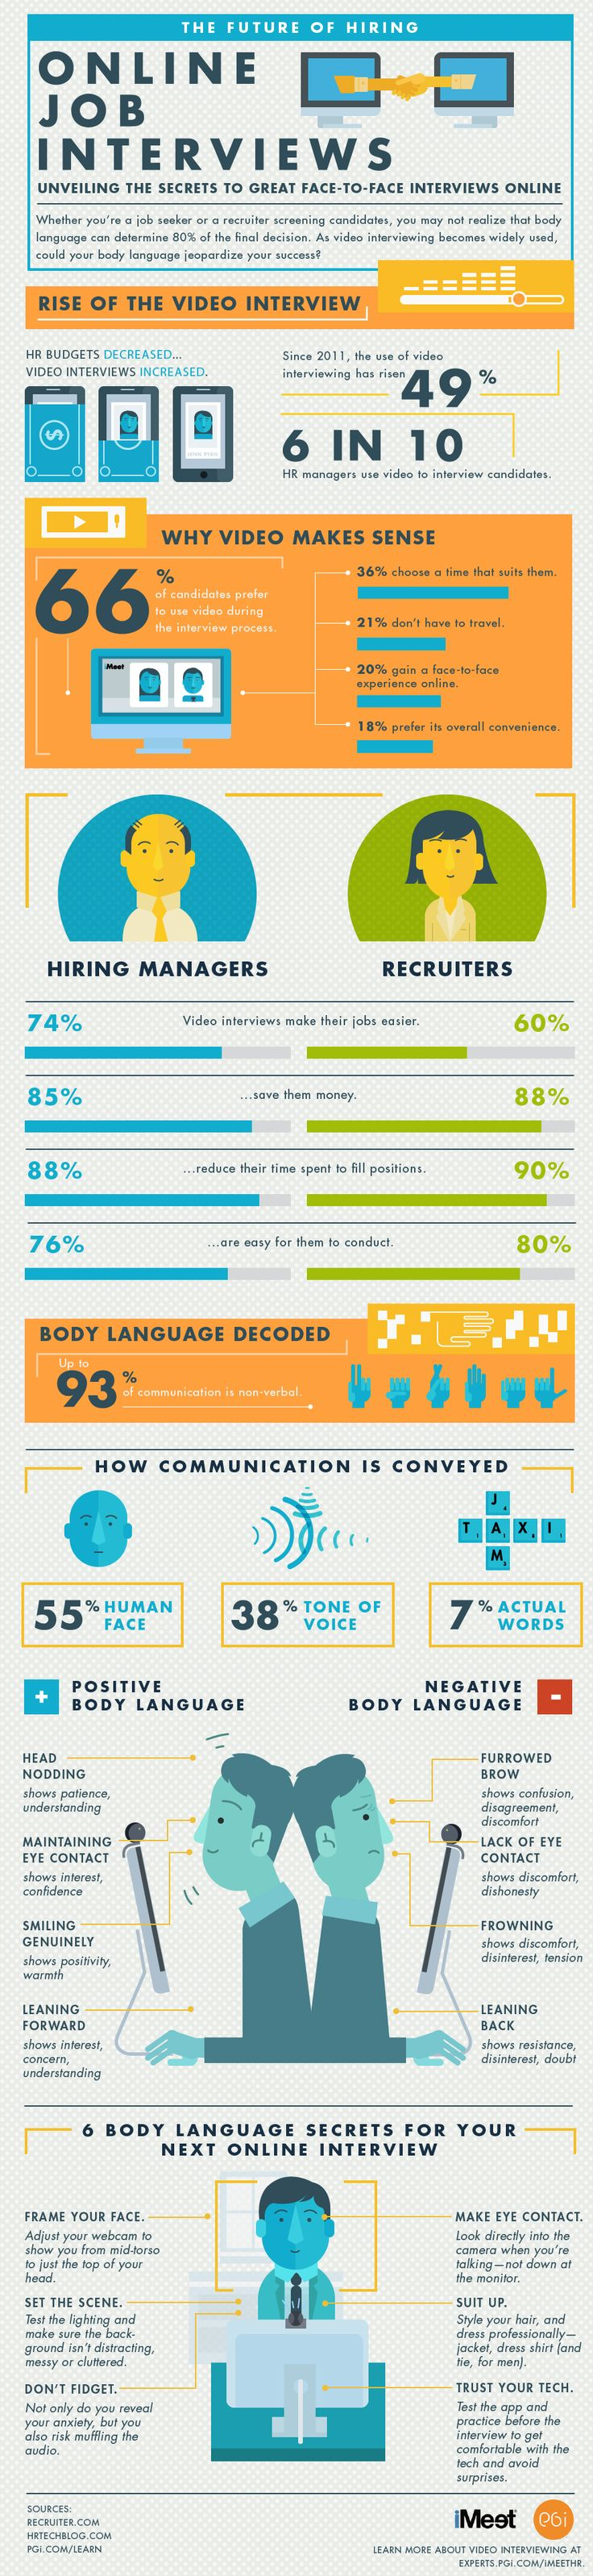 17 best images about job search advice facebook body language tricks to help recruiters nail video interviews